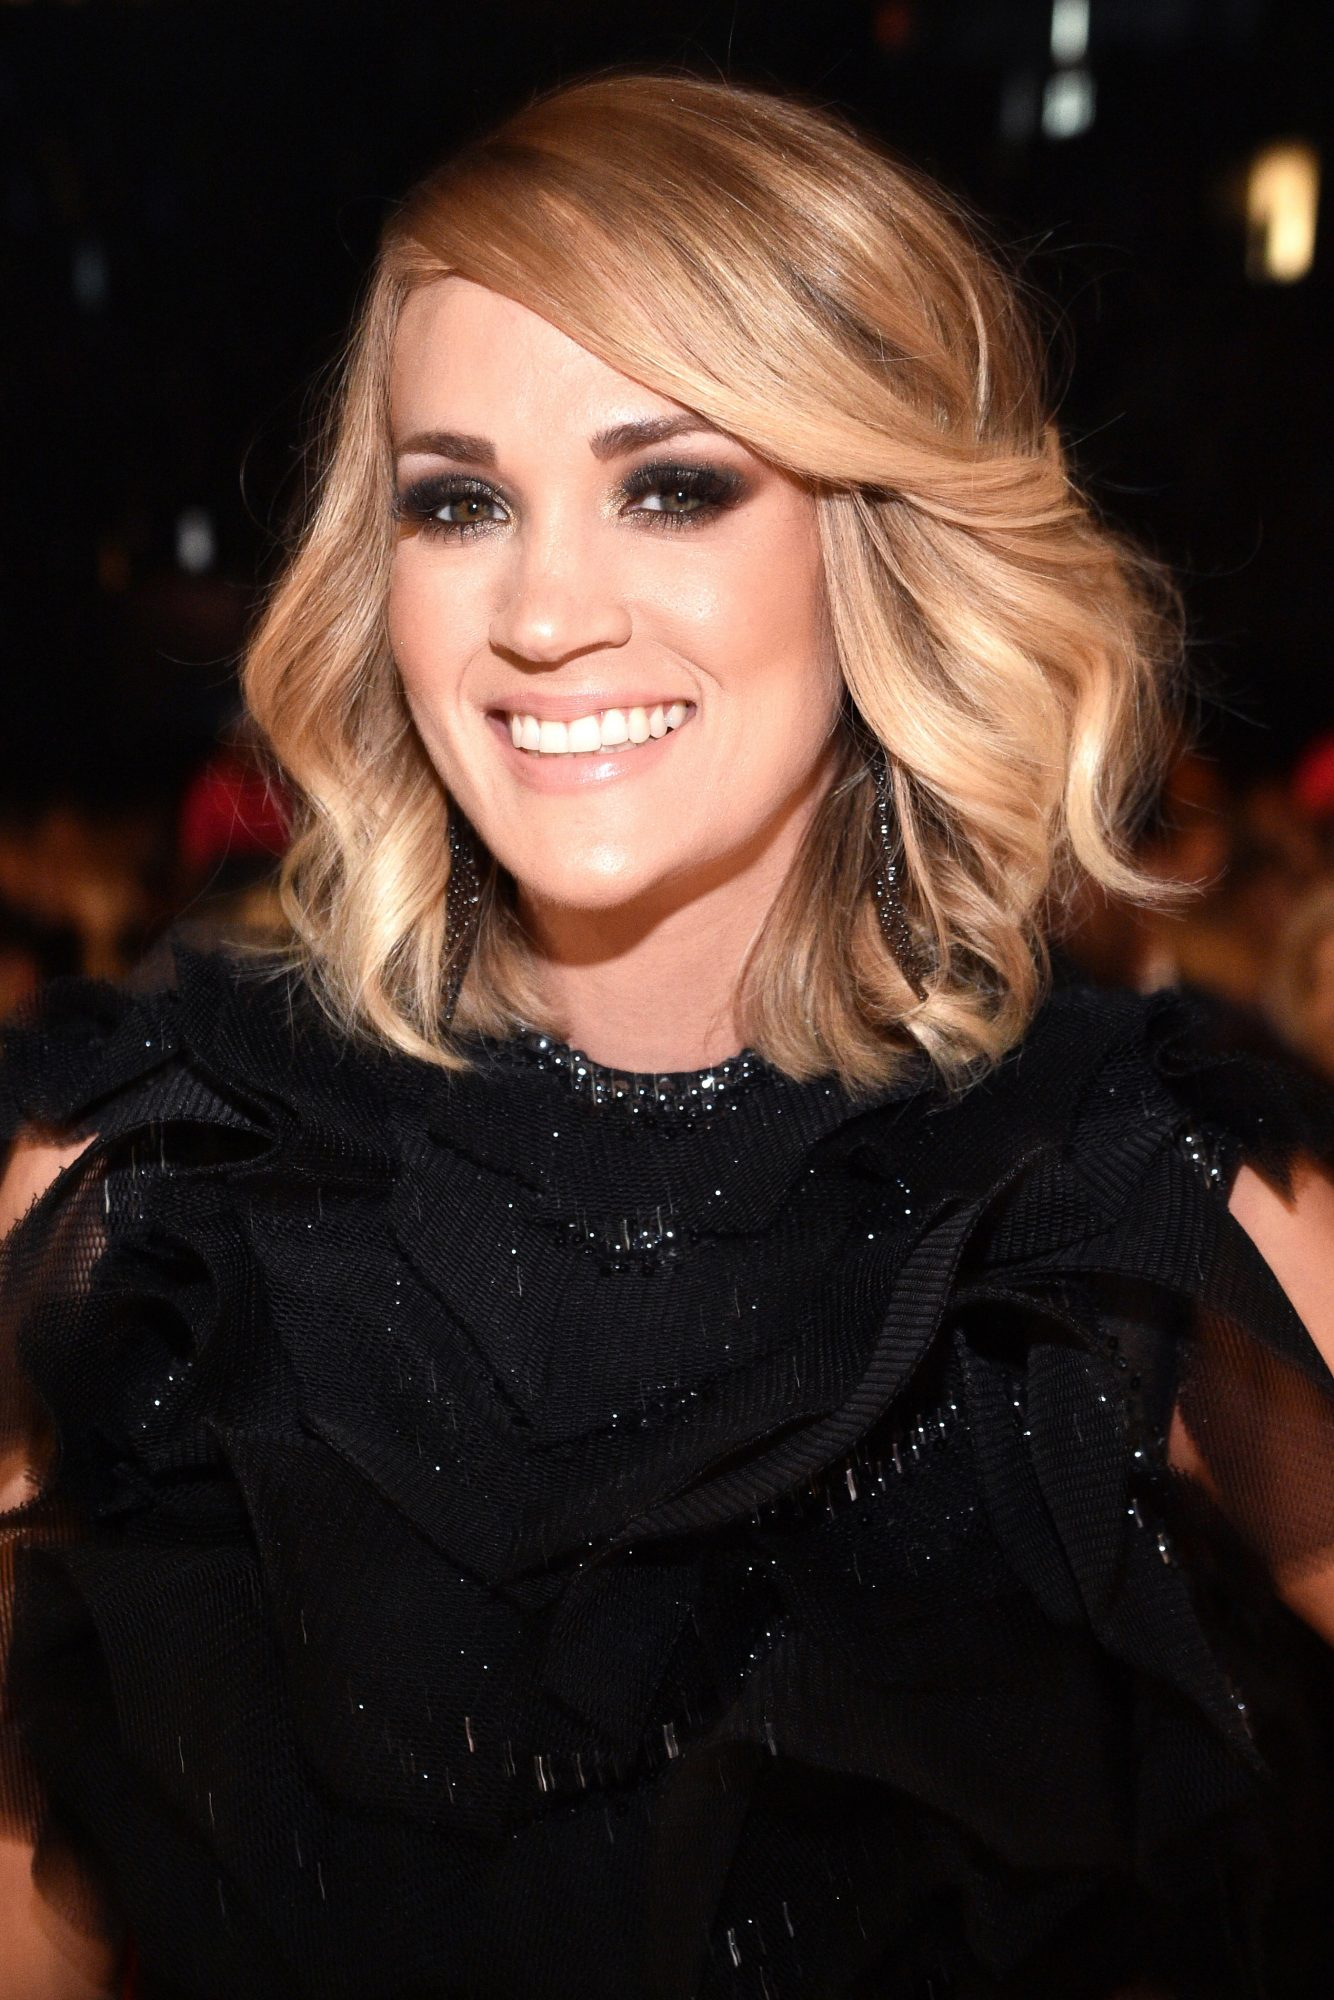 Carrie Underwood Hair Style: Everything We're Currently Obsessing Over From Carrie